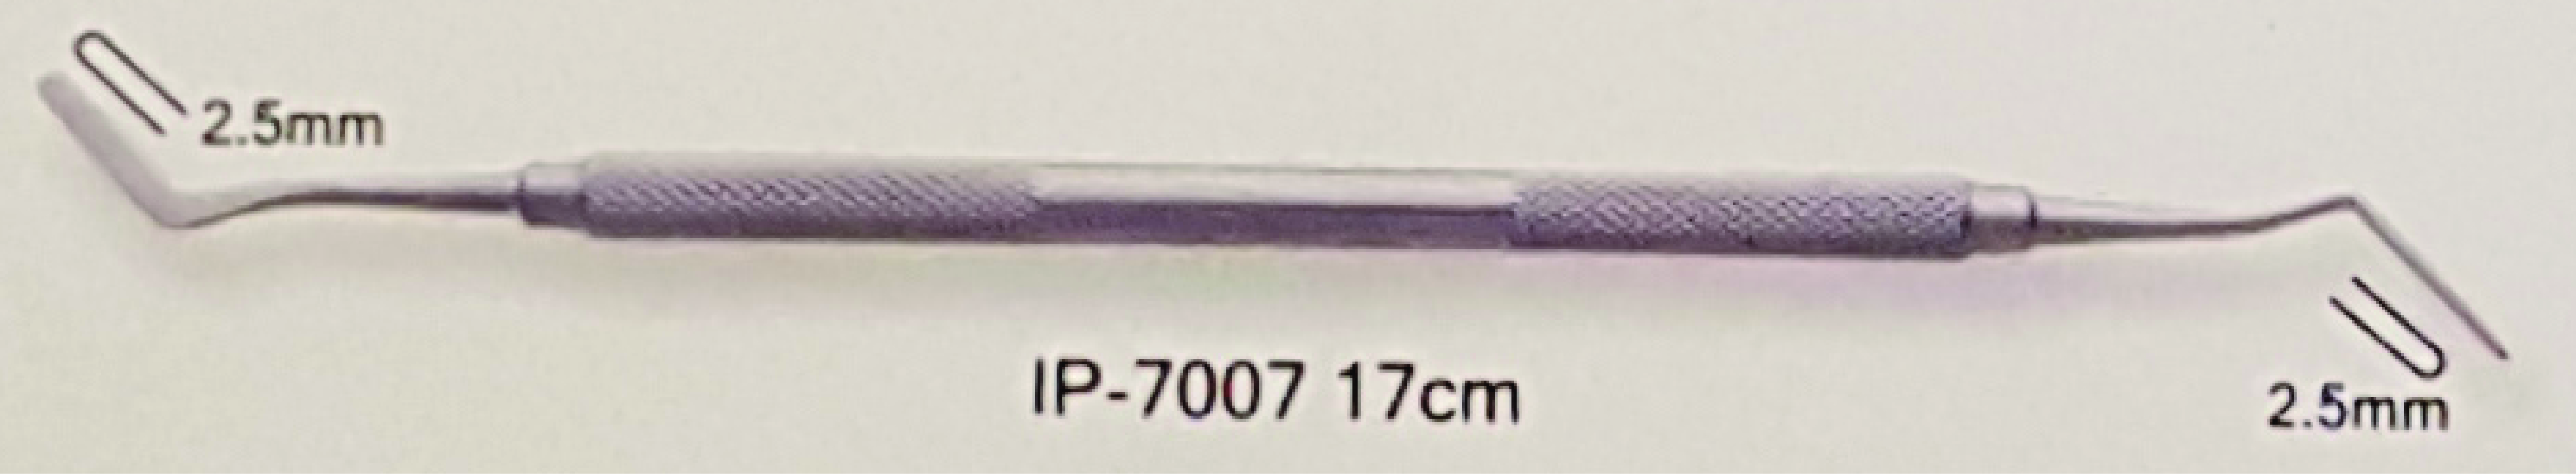 IP-7007 17cm 2.5mm point